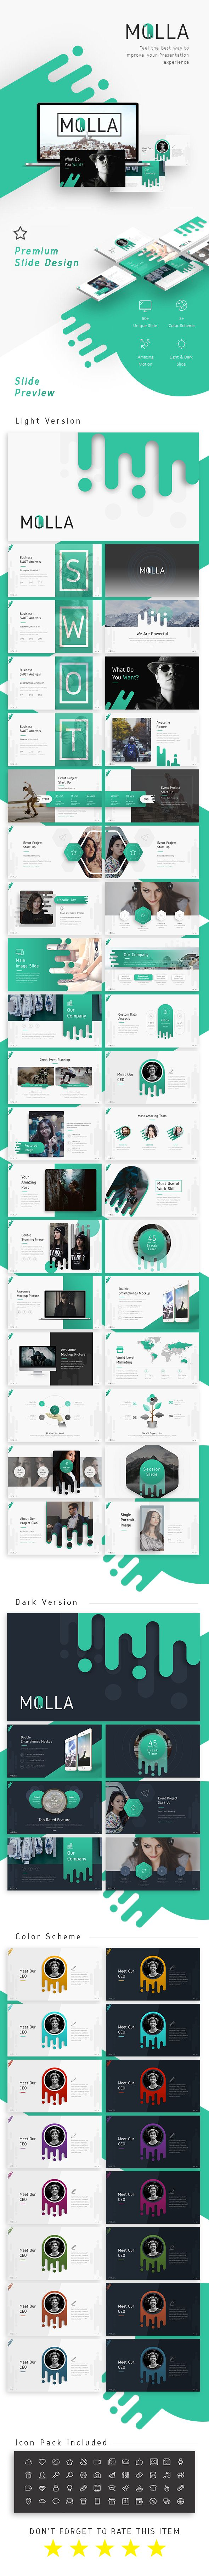 molla #presentation template - creative #powerpoint templates, Presentation templates